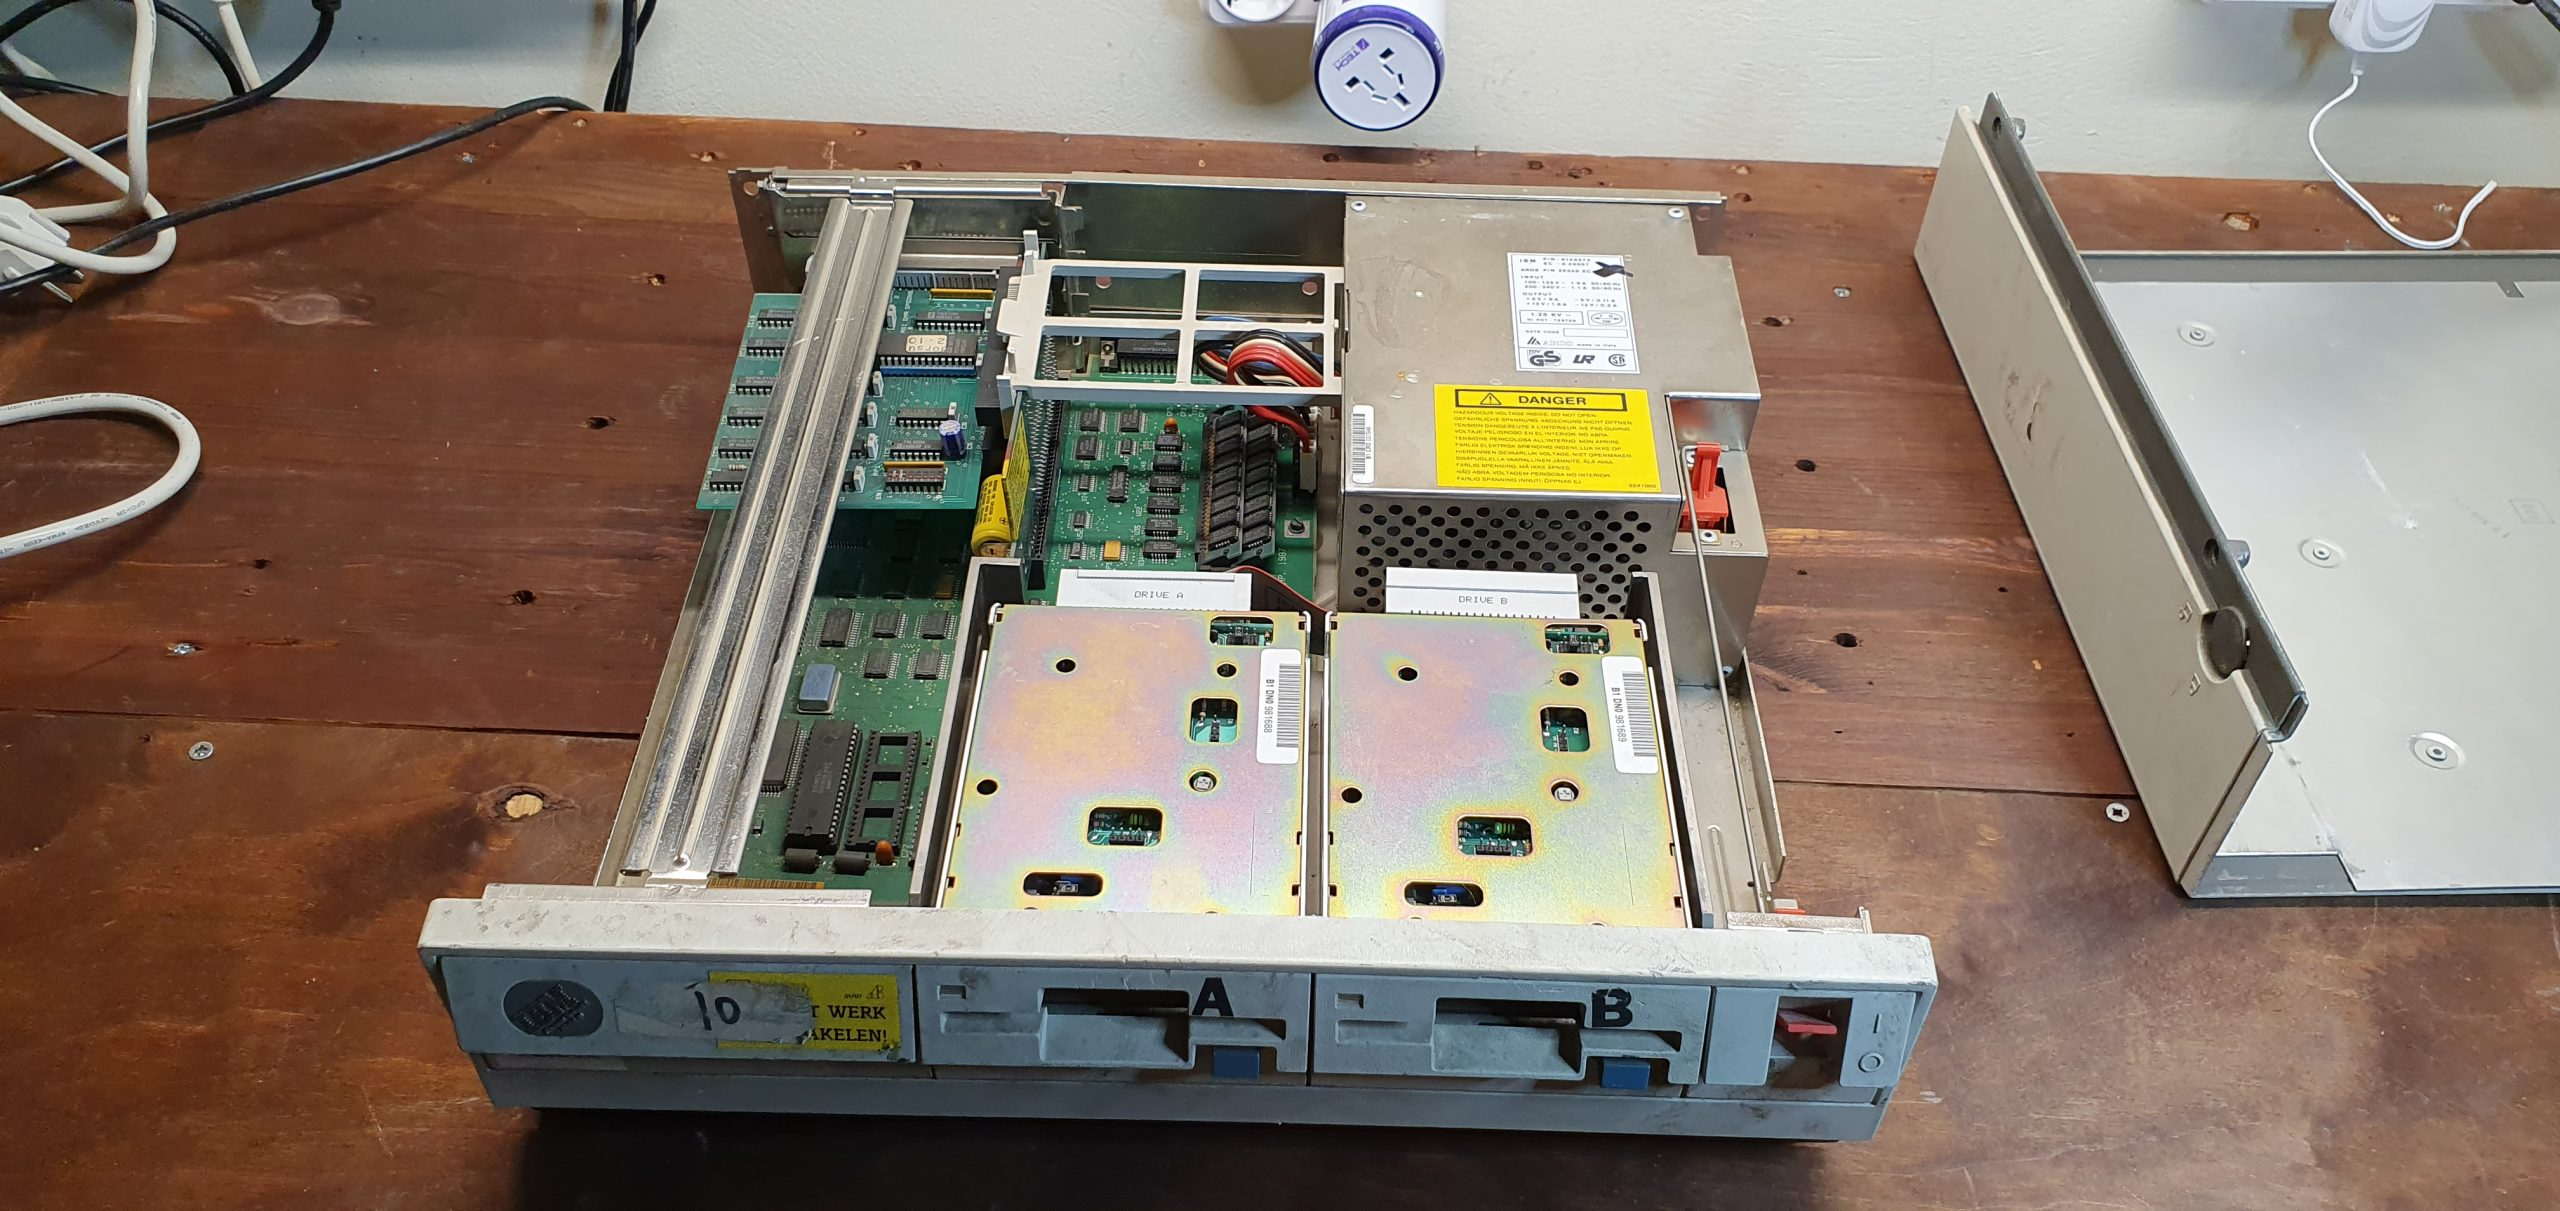 ibm-ps2-30-before-cleaning-3-internals